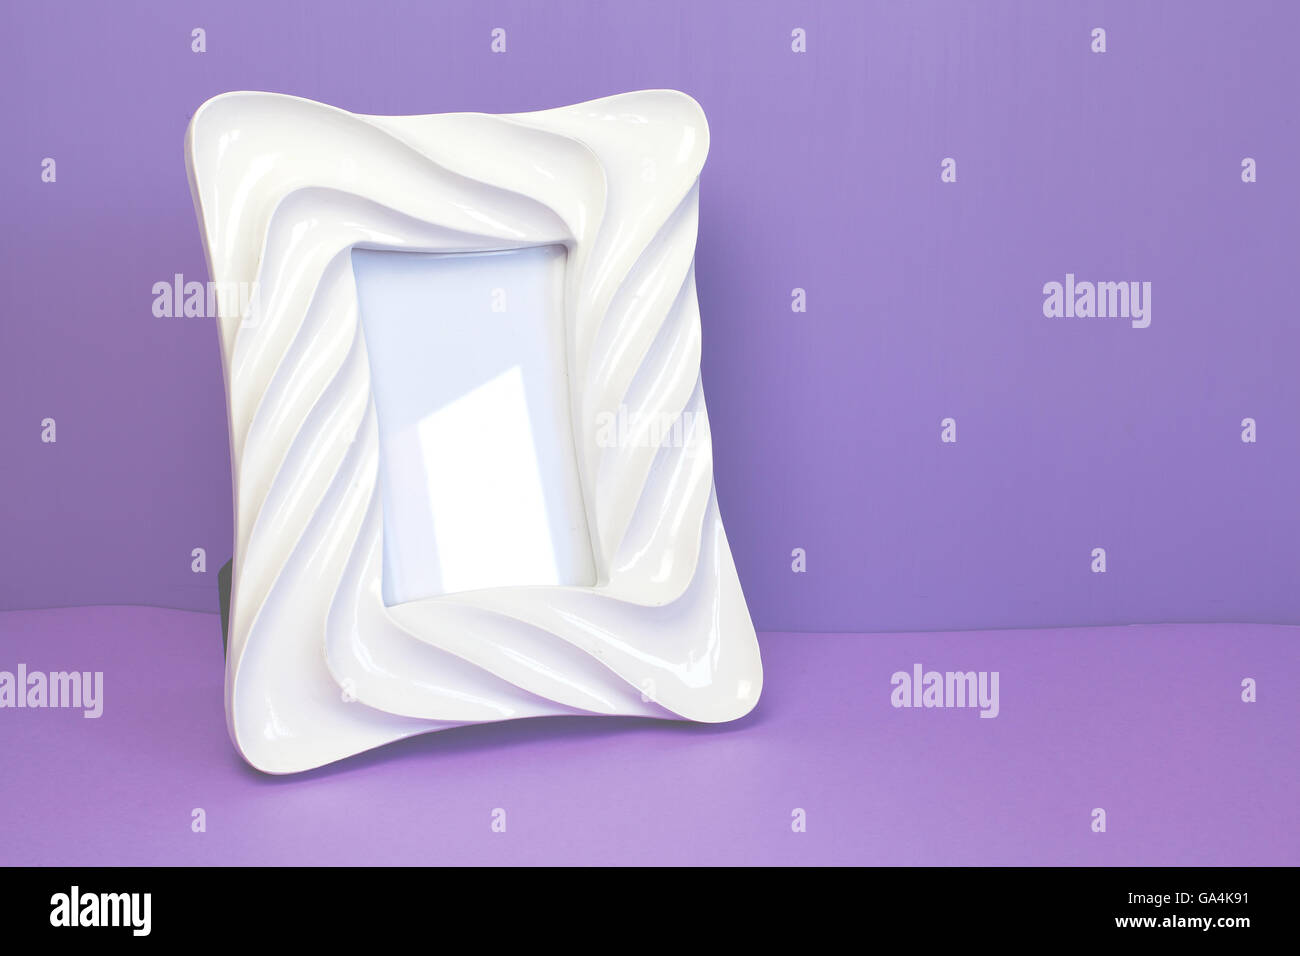 White photo frame on a purple wall. - Stock Image